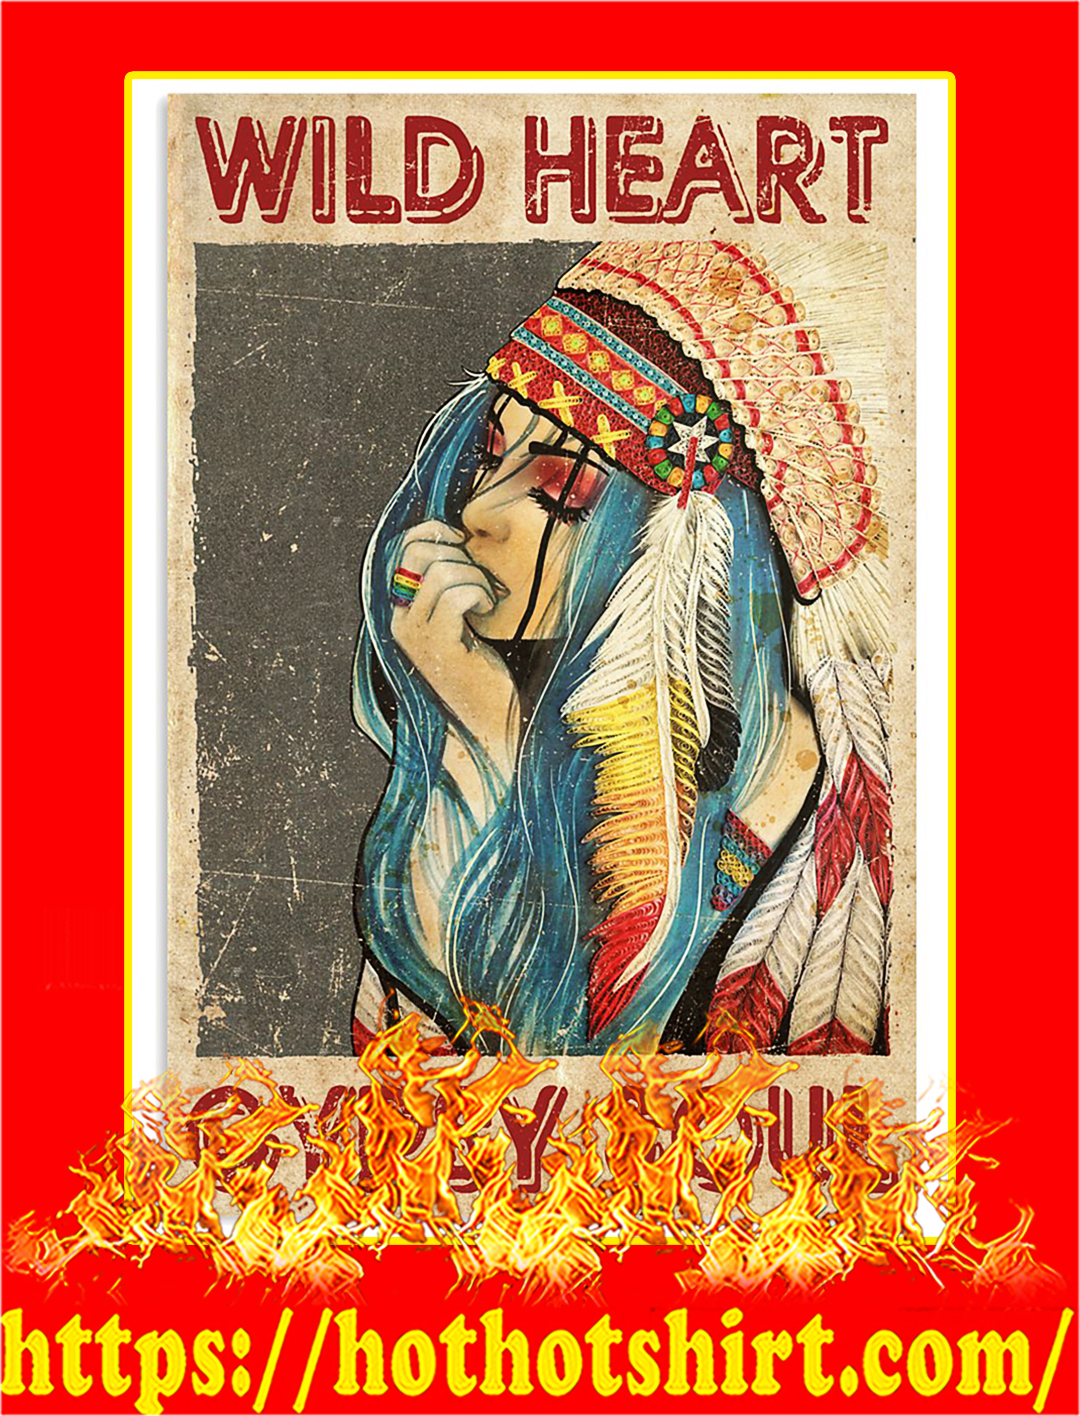 Native Wild heart gypsy soul poster - A2